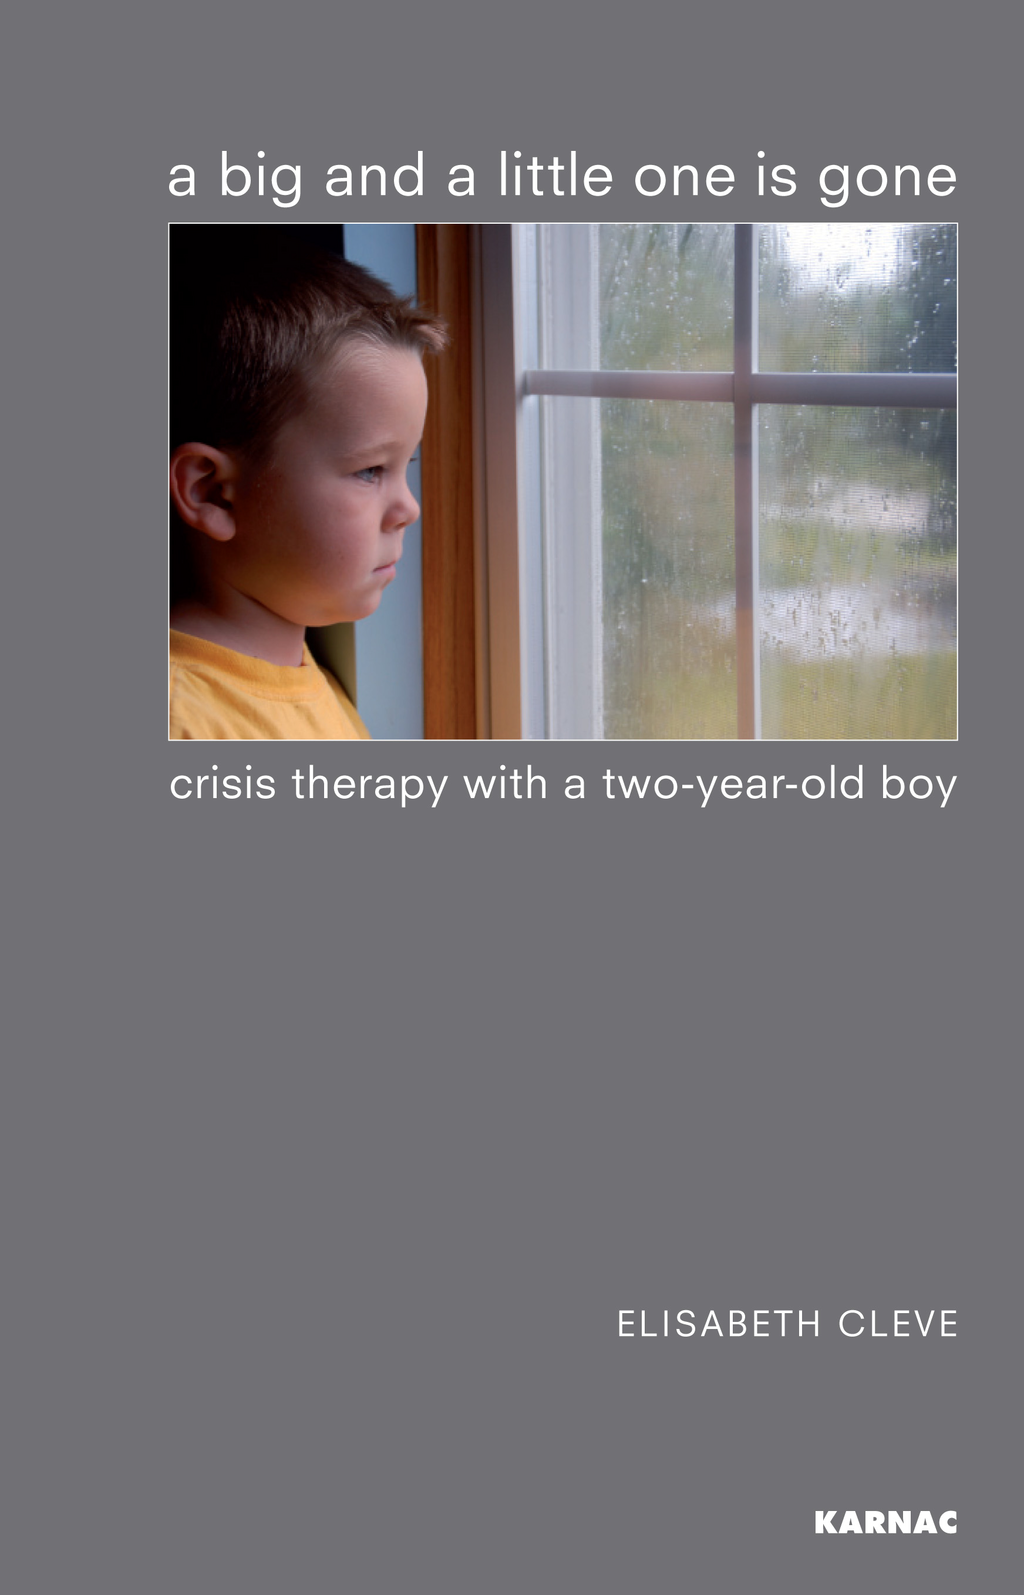 A Big and a Little One is Gone: Crisis Therapy with a Two-year-old Boy